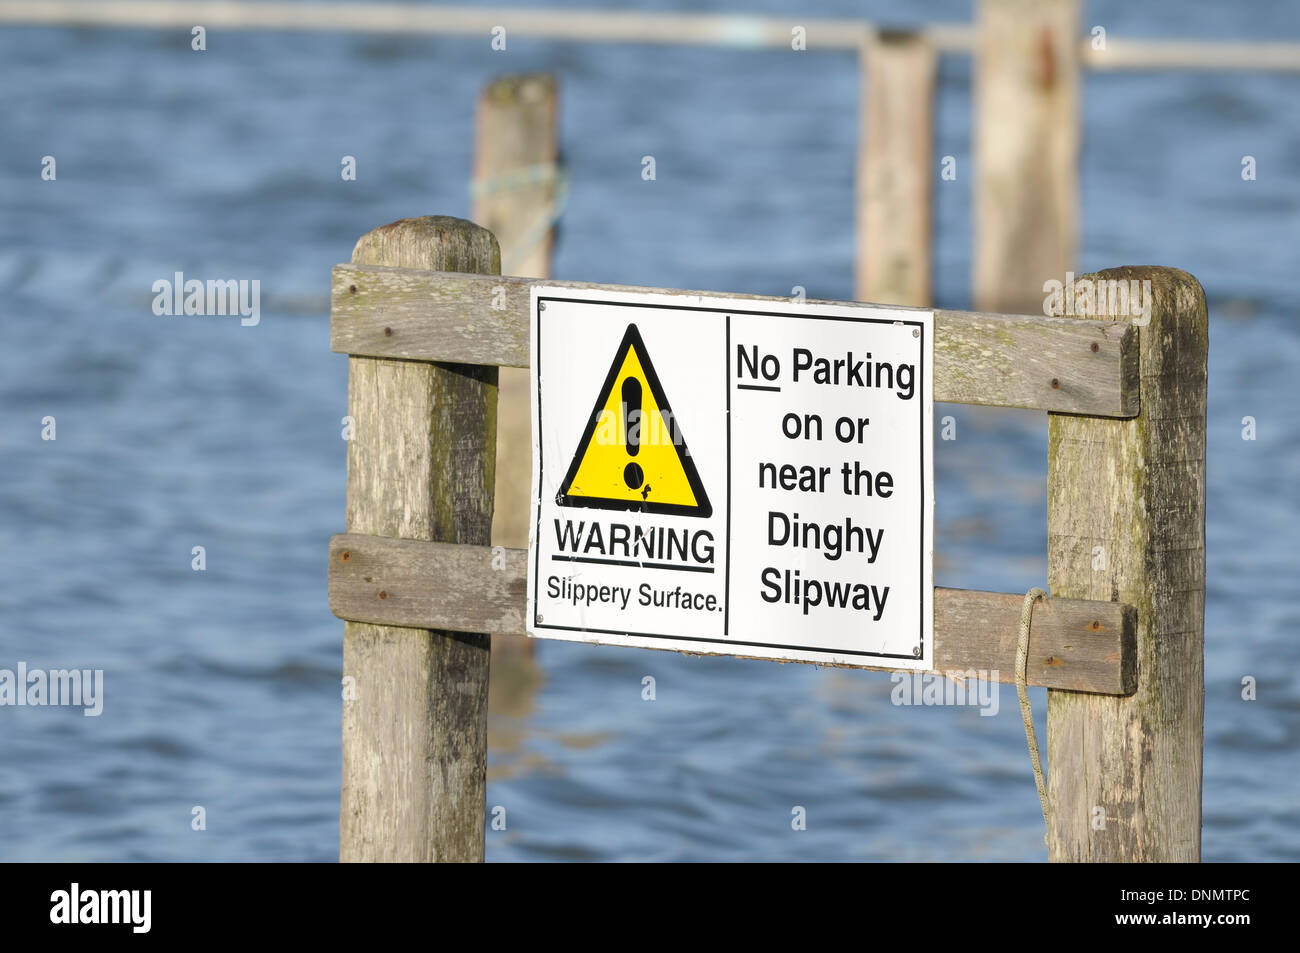 warning sign showing slippery surface and no parking on or near the dingy slipway at bosham west sussex UK - Stock Image